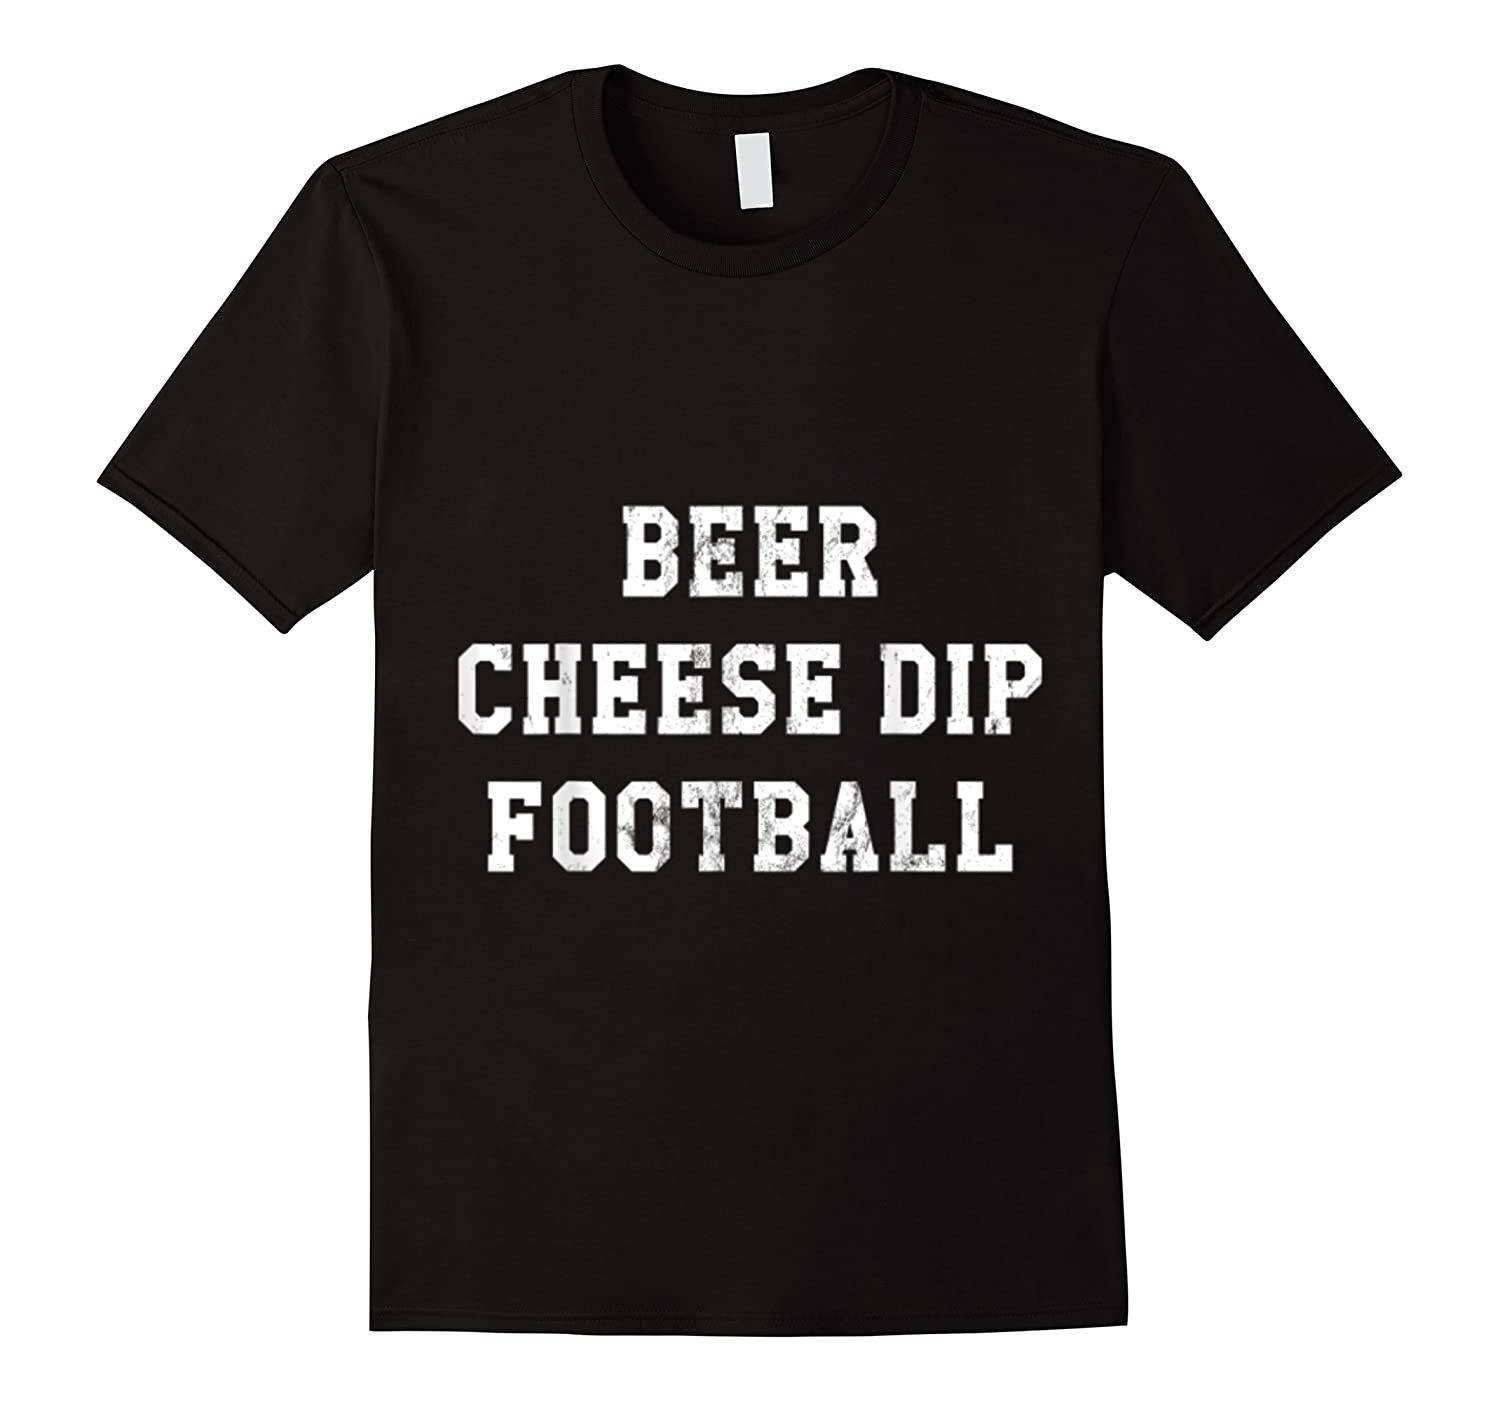 Beer Cheese Dip Football Design For Game Day T-shirt